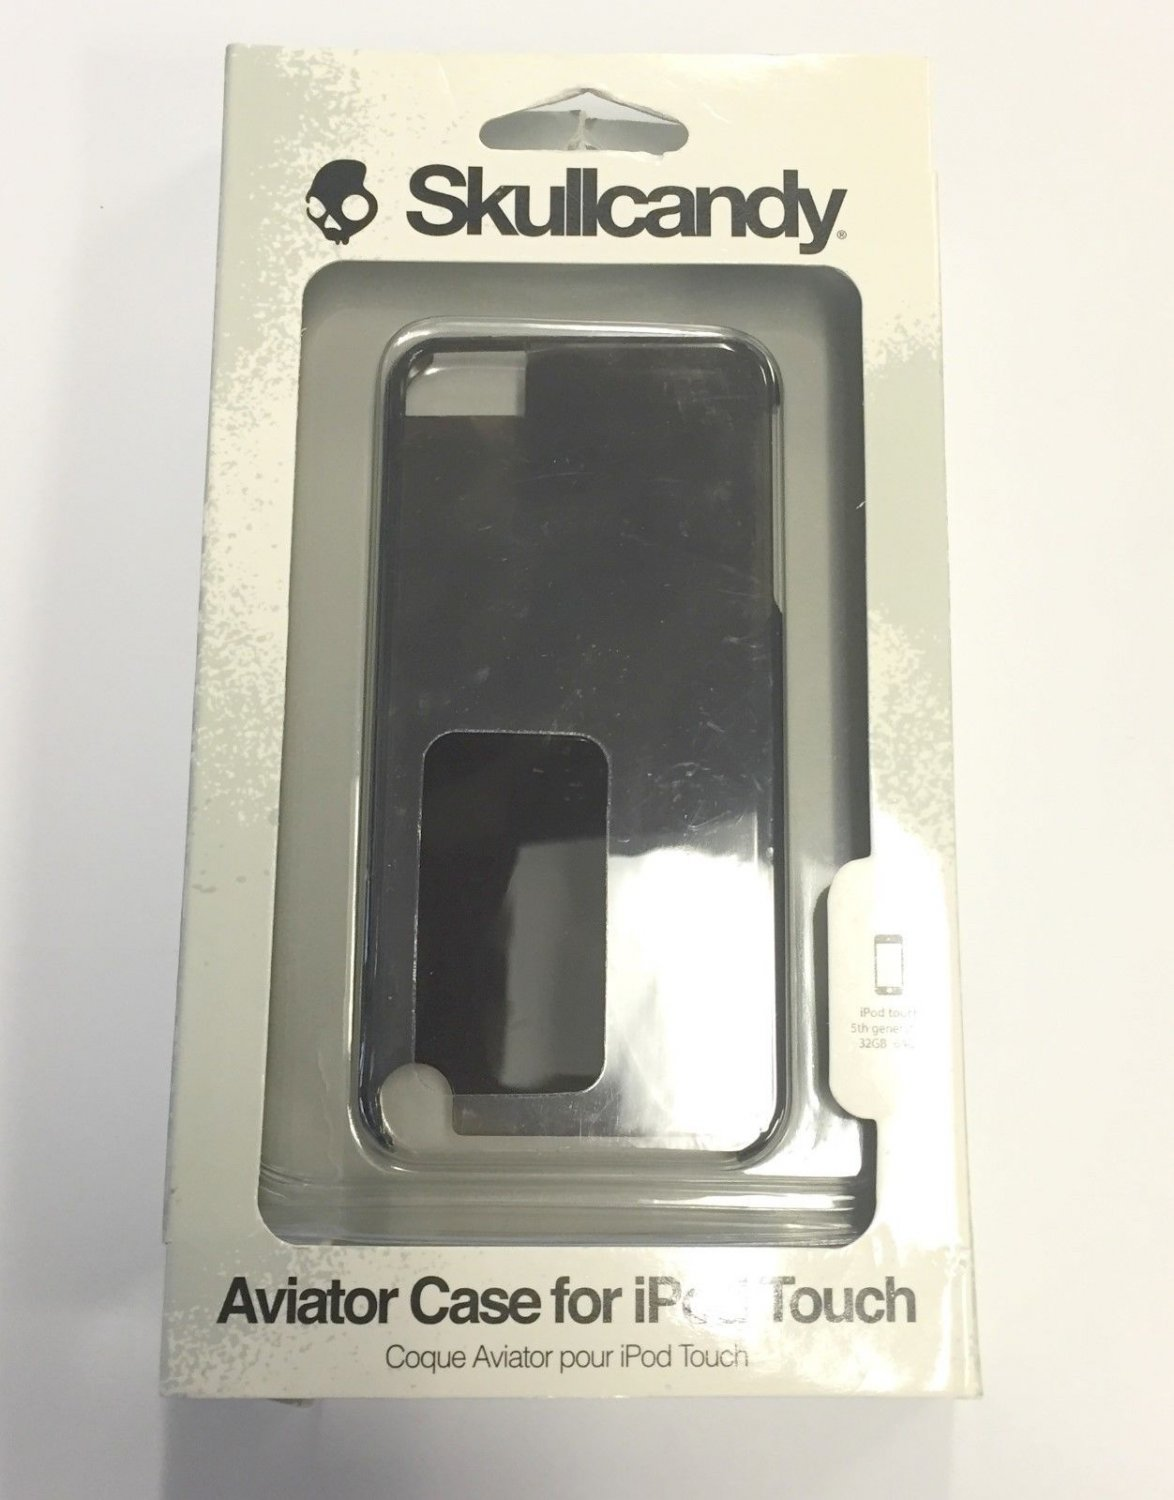 Skullcandy Aviator Protector Case For Apple iPod Touch 5th Generation Black 371